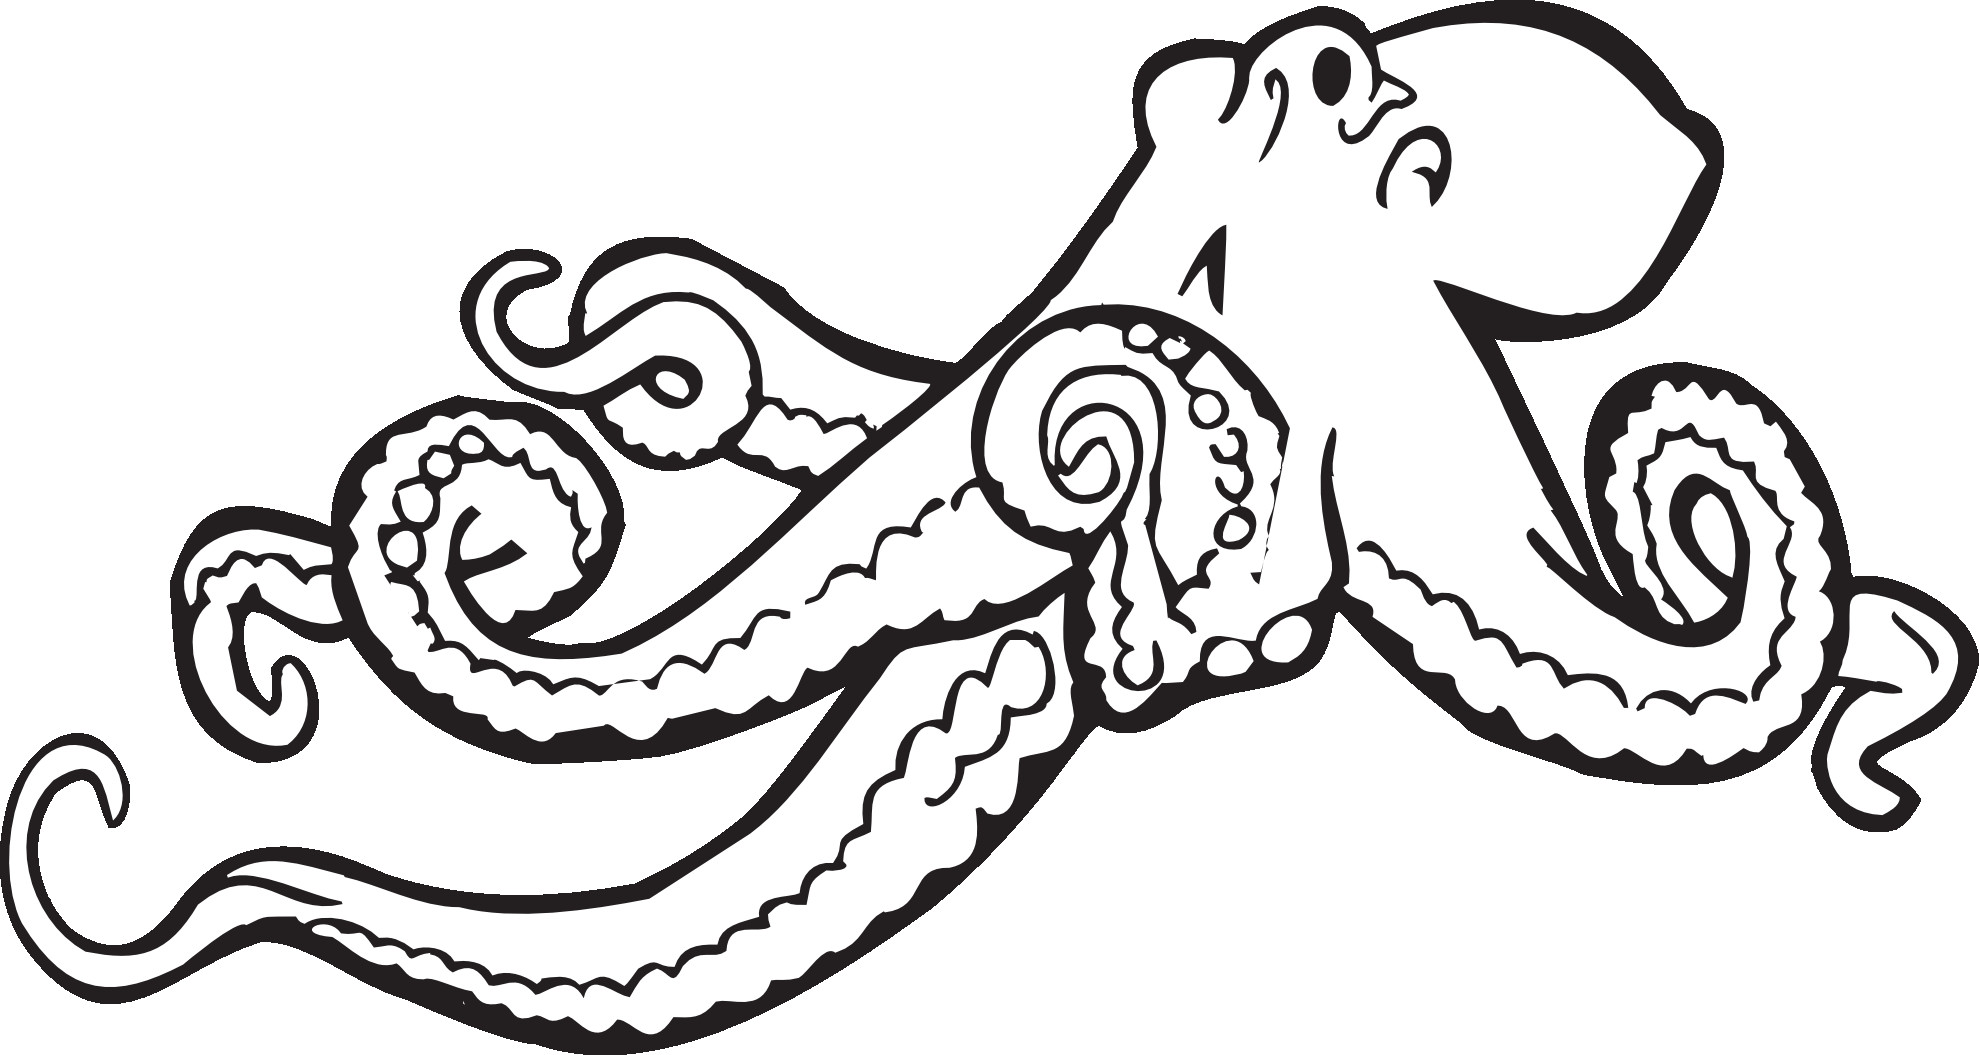 Octopus Coloring Book Pages  Octopus Coloring Pages Preschool and Kindergarten